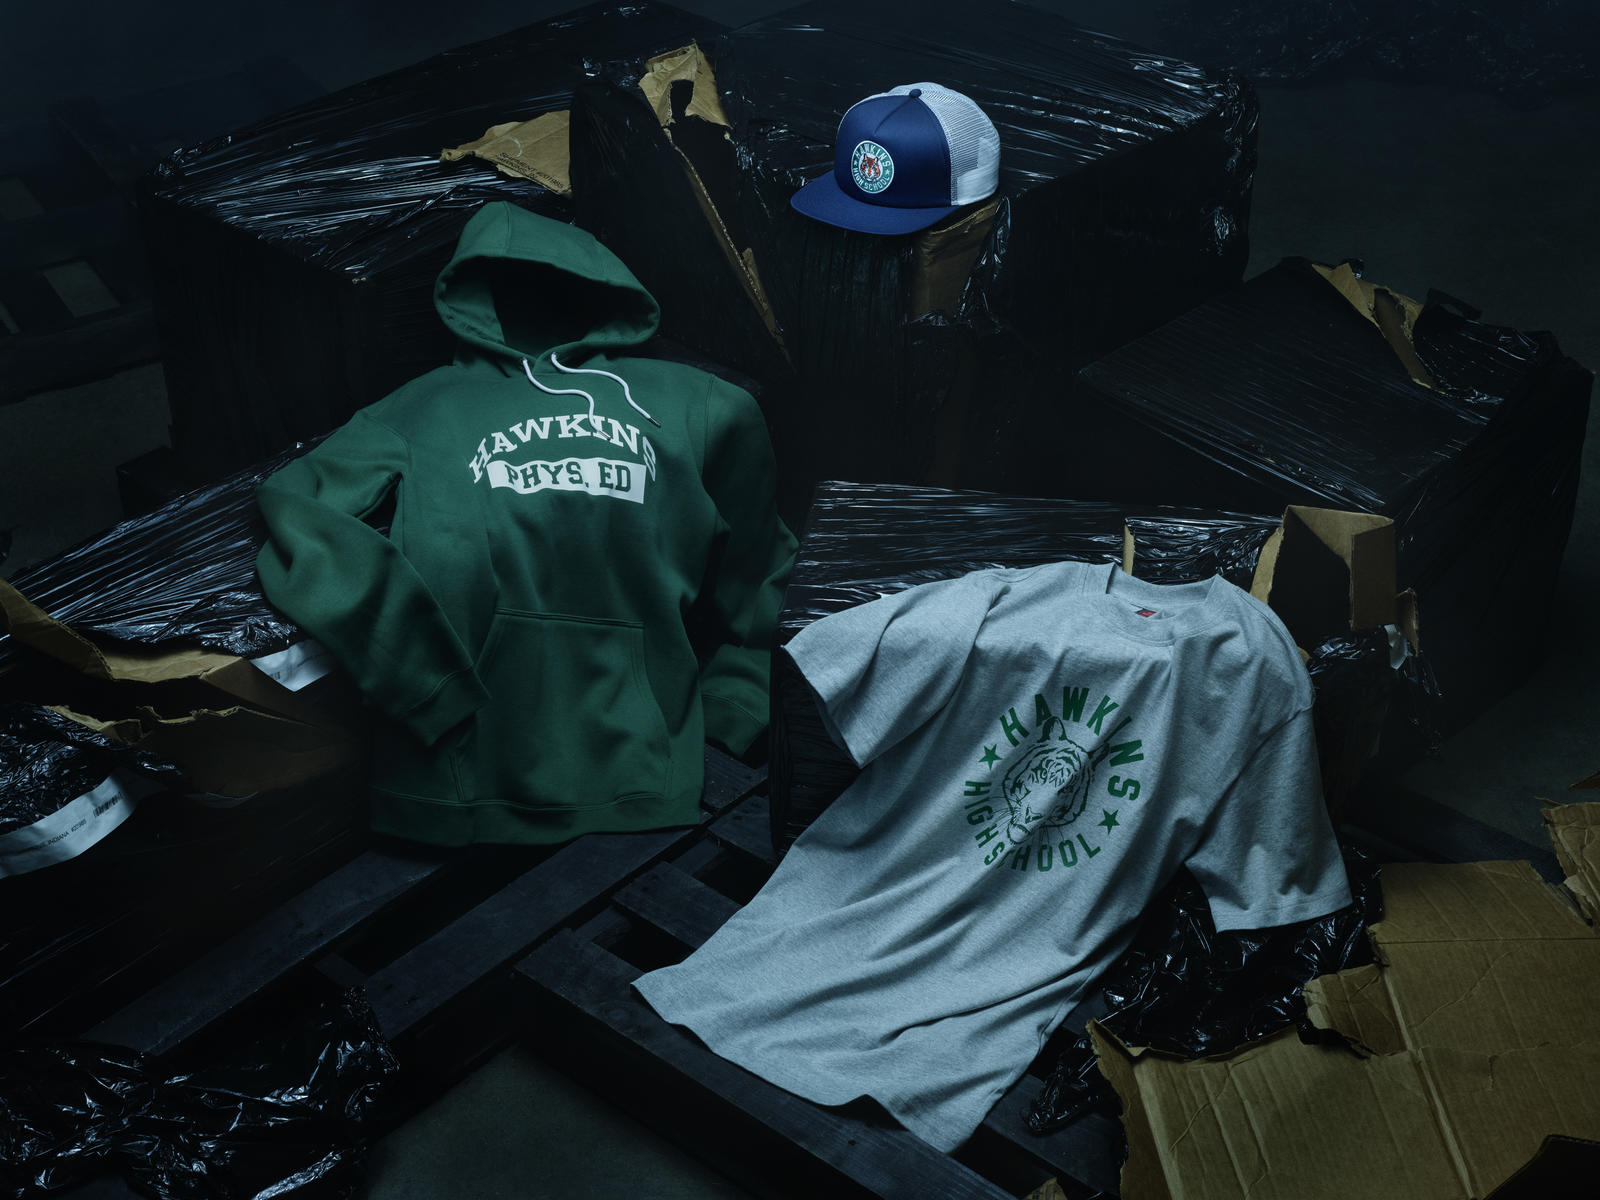 Nike x Stranger Things Apparel Collection